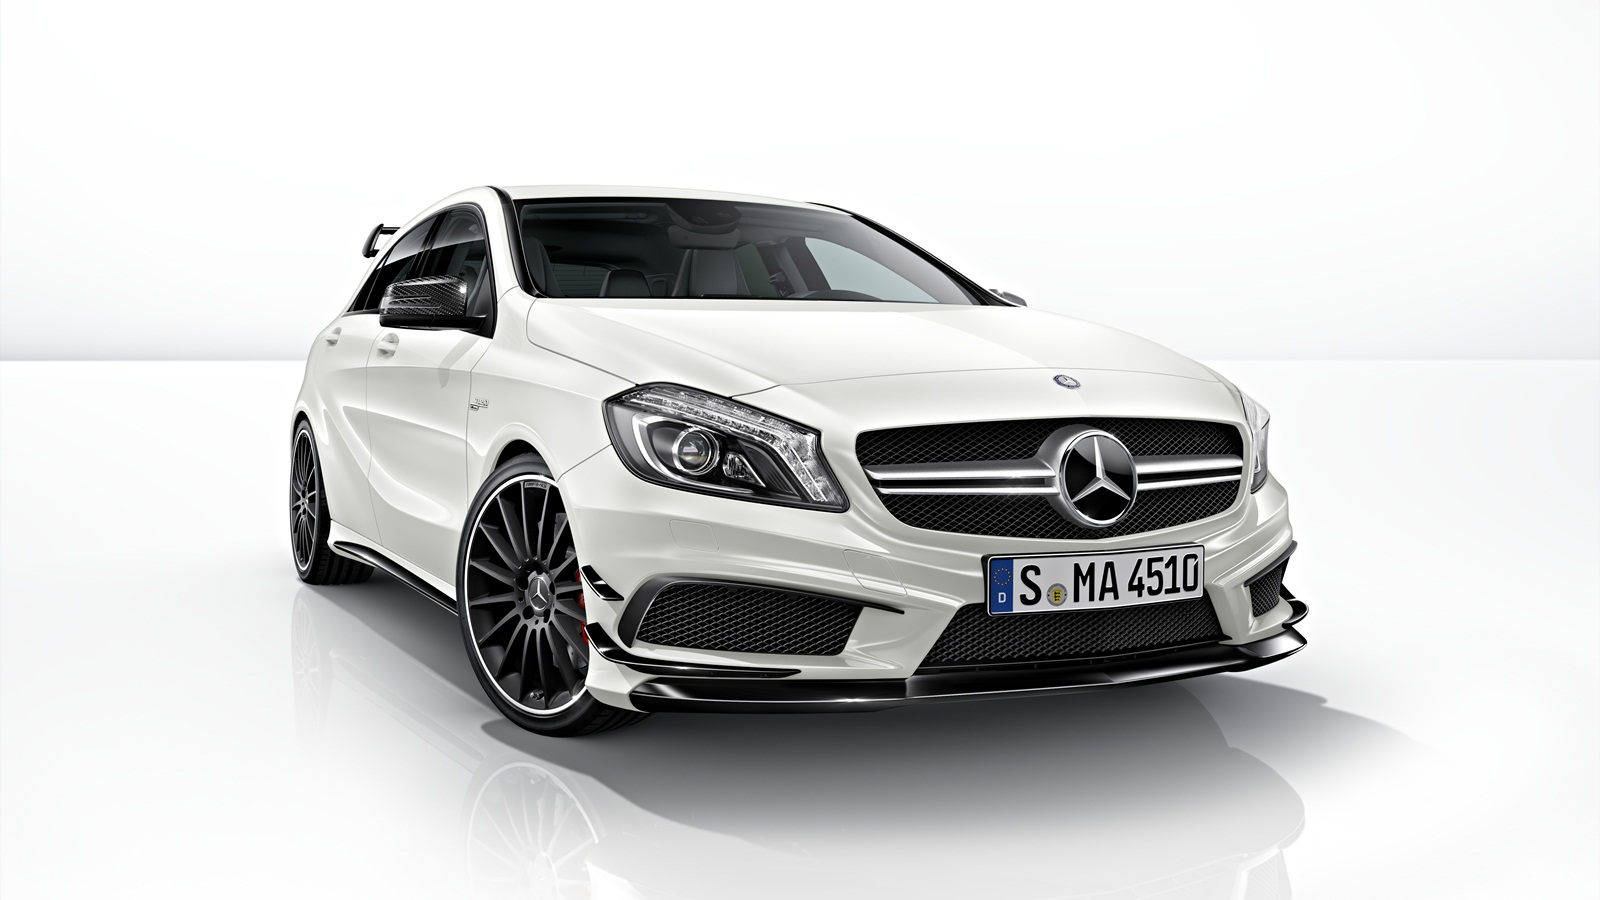 MERCEDES BENZ A45 AMG A CLASS CONVERSION BODY STYLING UPGRADE BODY KIT 2012+ W176 | Dynamic Customs